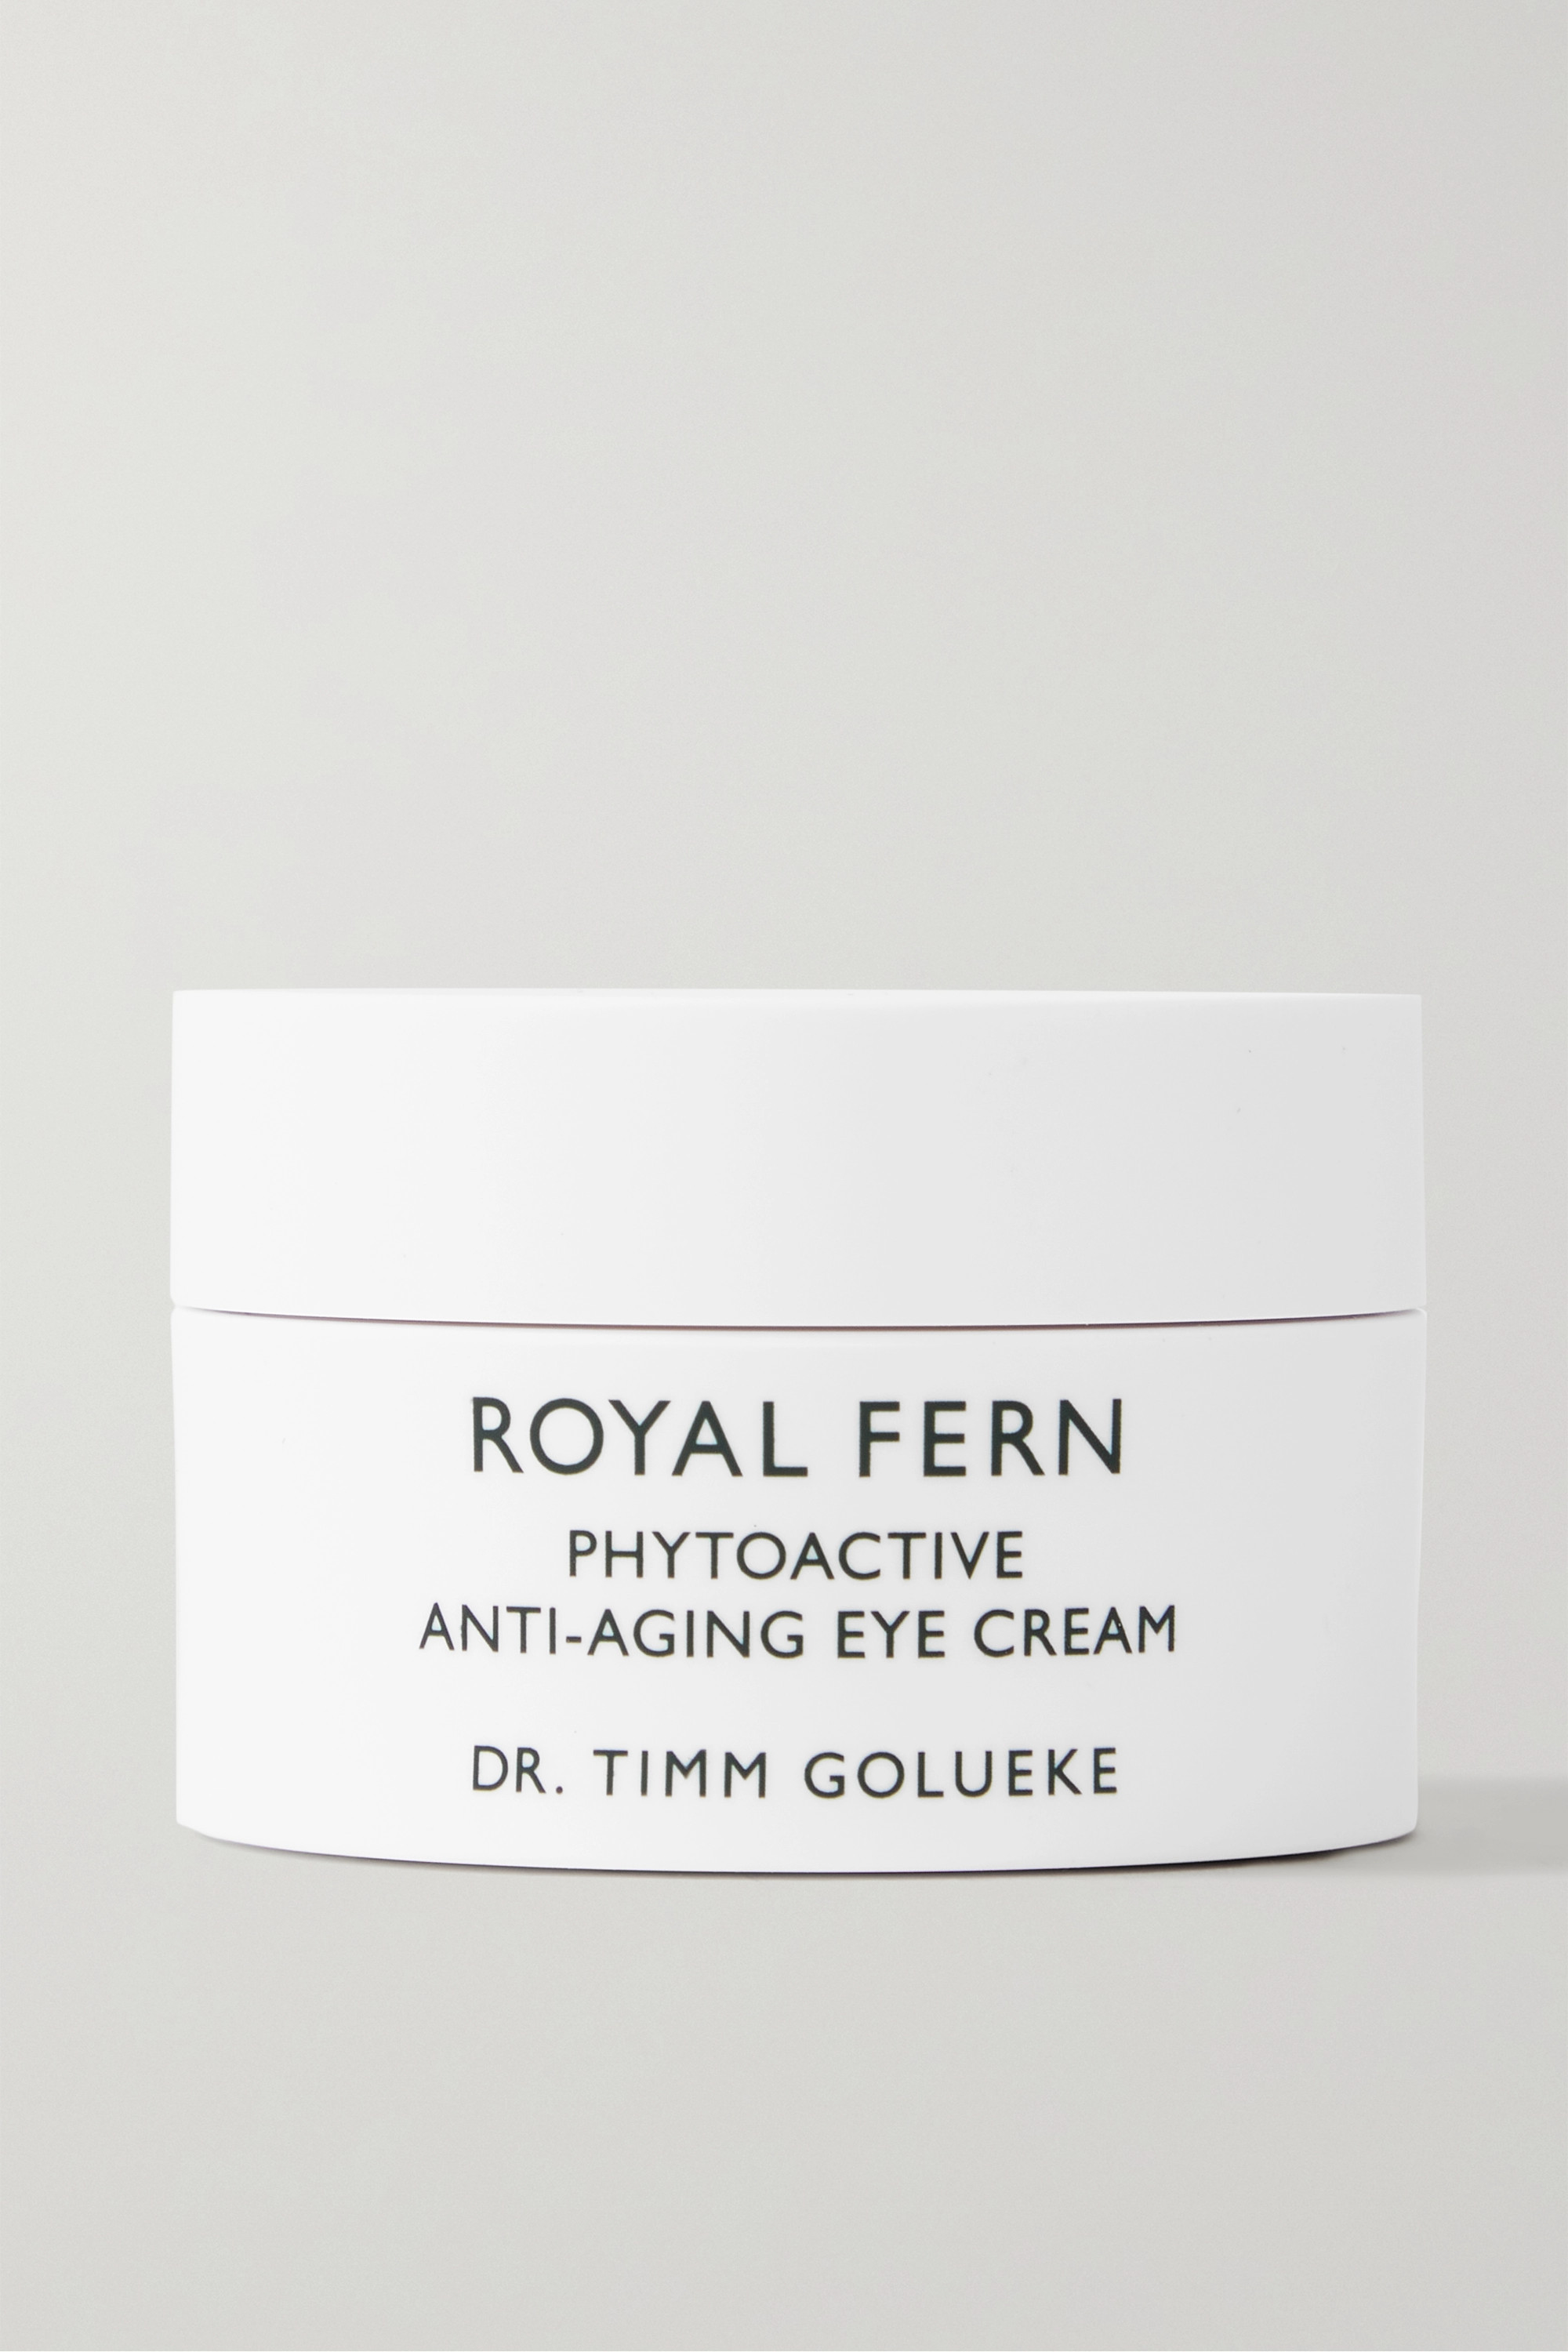 Royal Fern Phytoactive Anti-aging Eye Cream, 15ml In Colorless